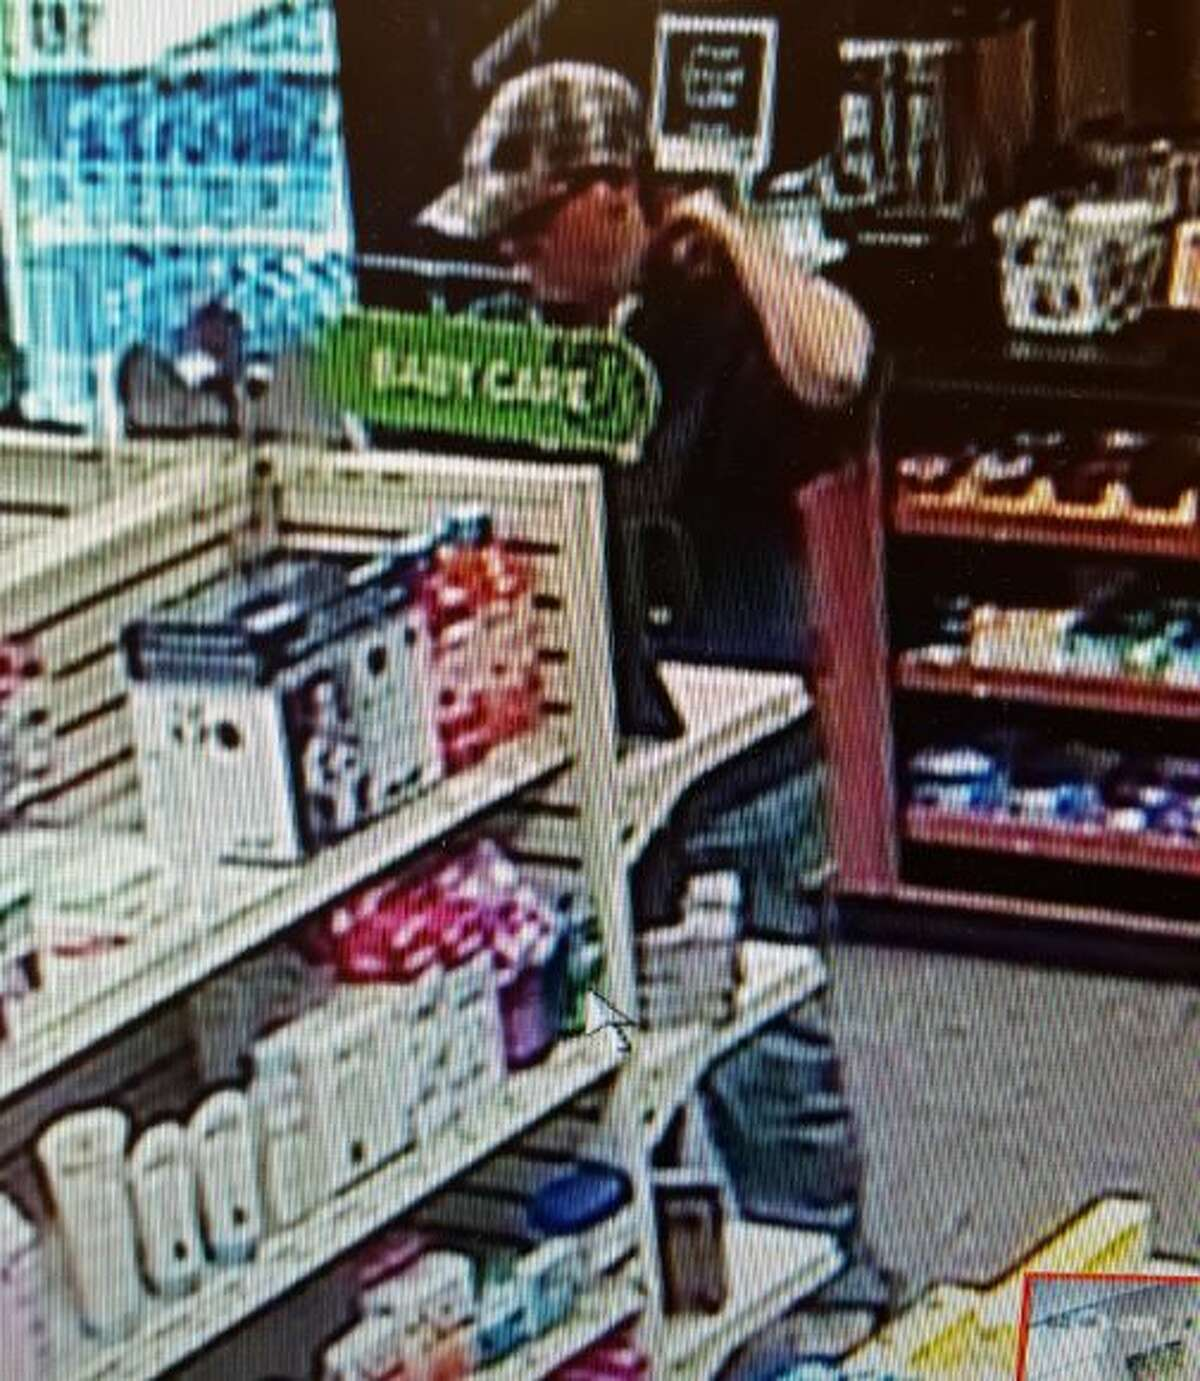 Montgomery County SheriffÂ?'s deputies were dispatched just after 2 p.m. Friday to a robbery at the ACP Pharmacy inside the St. LukeÂ?'s Hospital Medical Arts Building at 17350 St. LukeÂ?'s Way in The Woodlands.A white female, appearing to be in her 20s, dressed in a gray baseball cap, gray hoodie and blue jeans walked into the pharmacy and pointed a small-framed revolver at the pharmacist behind the counter.